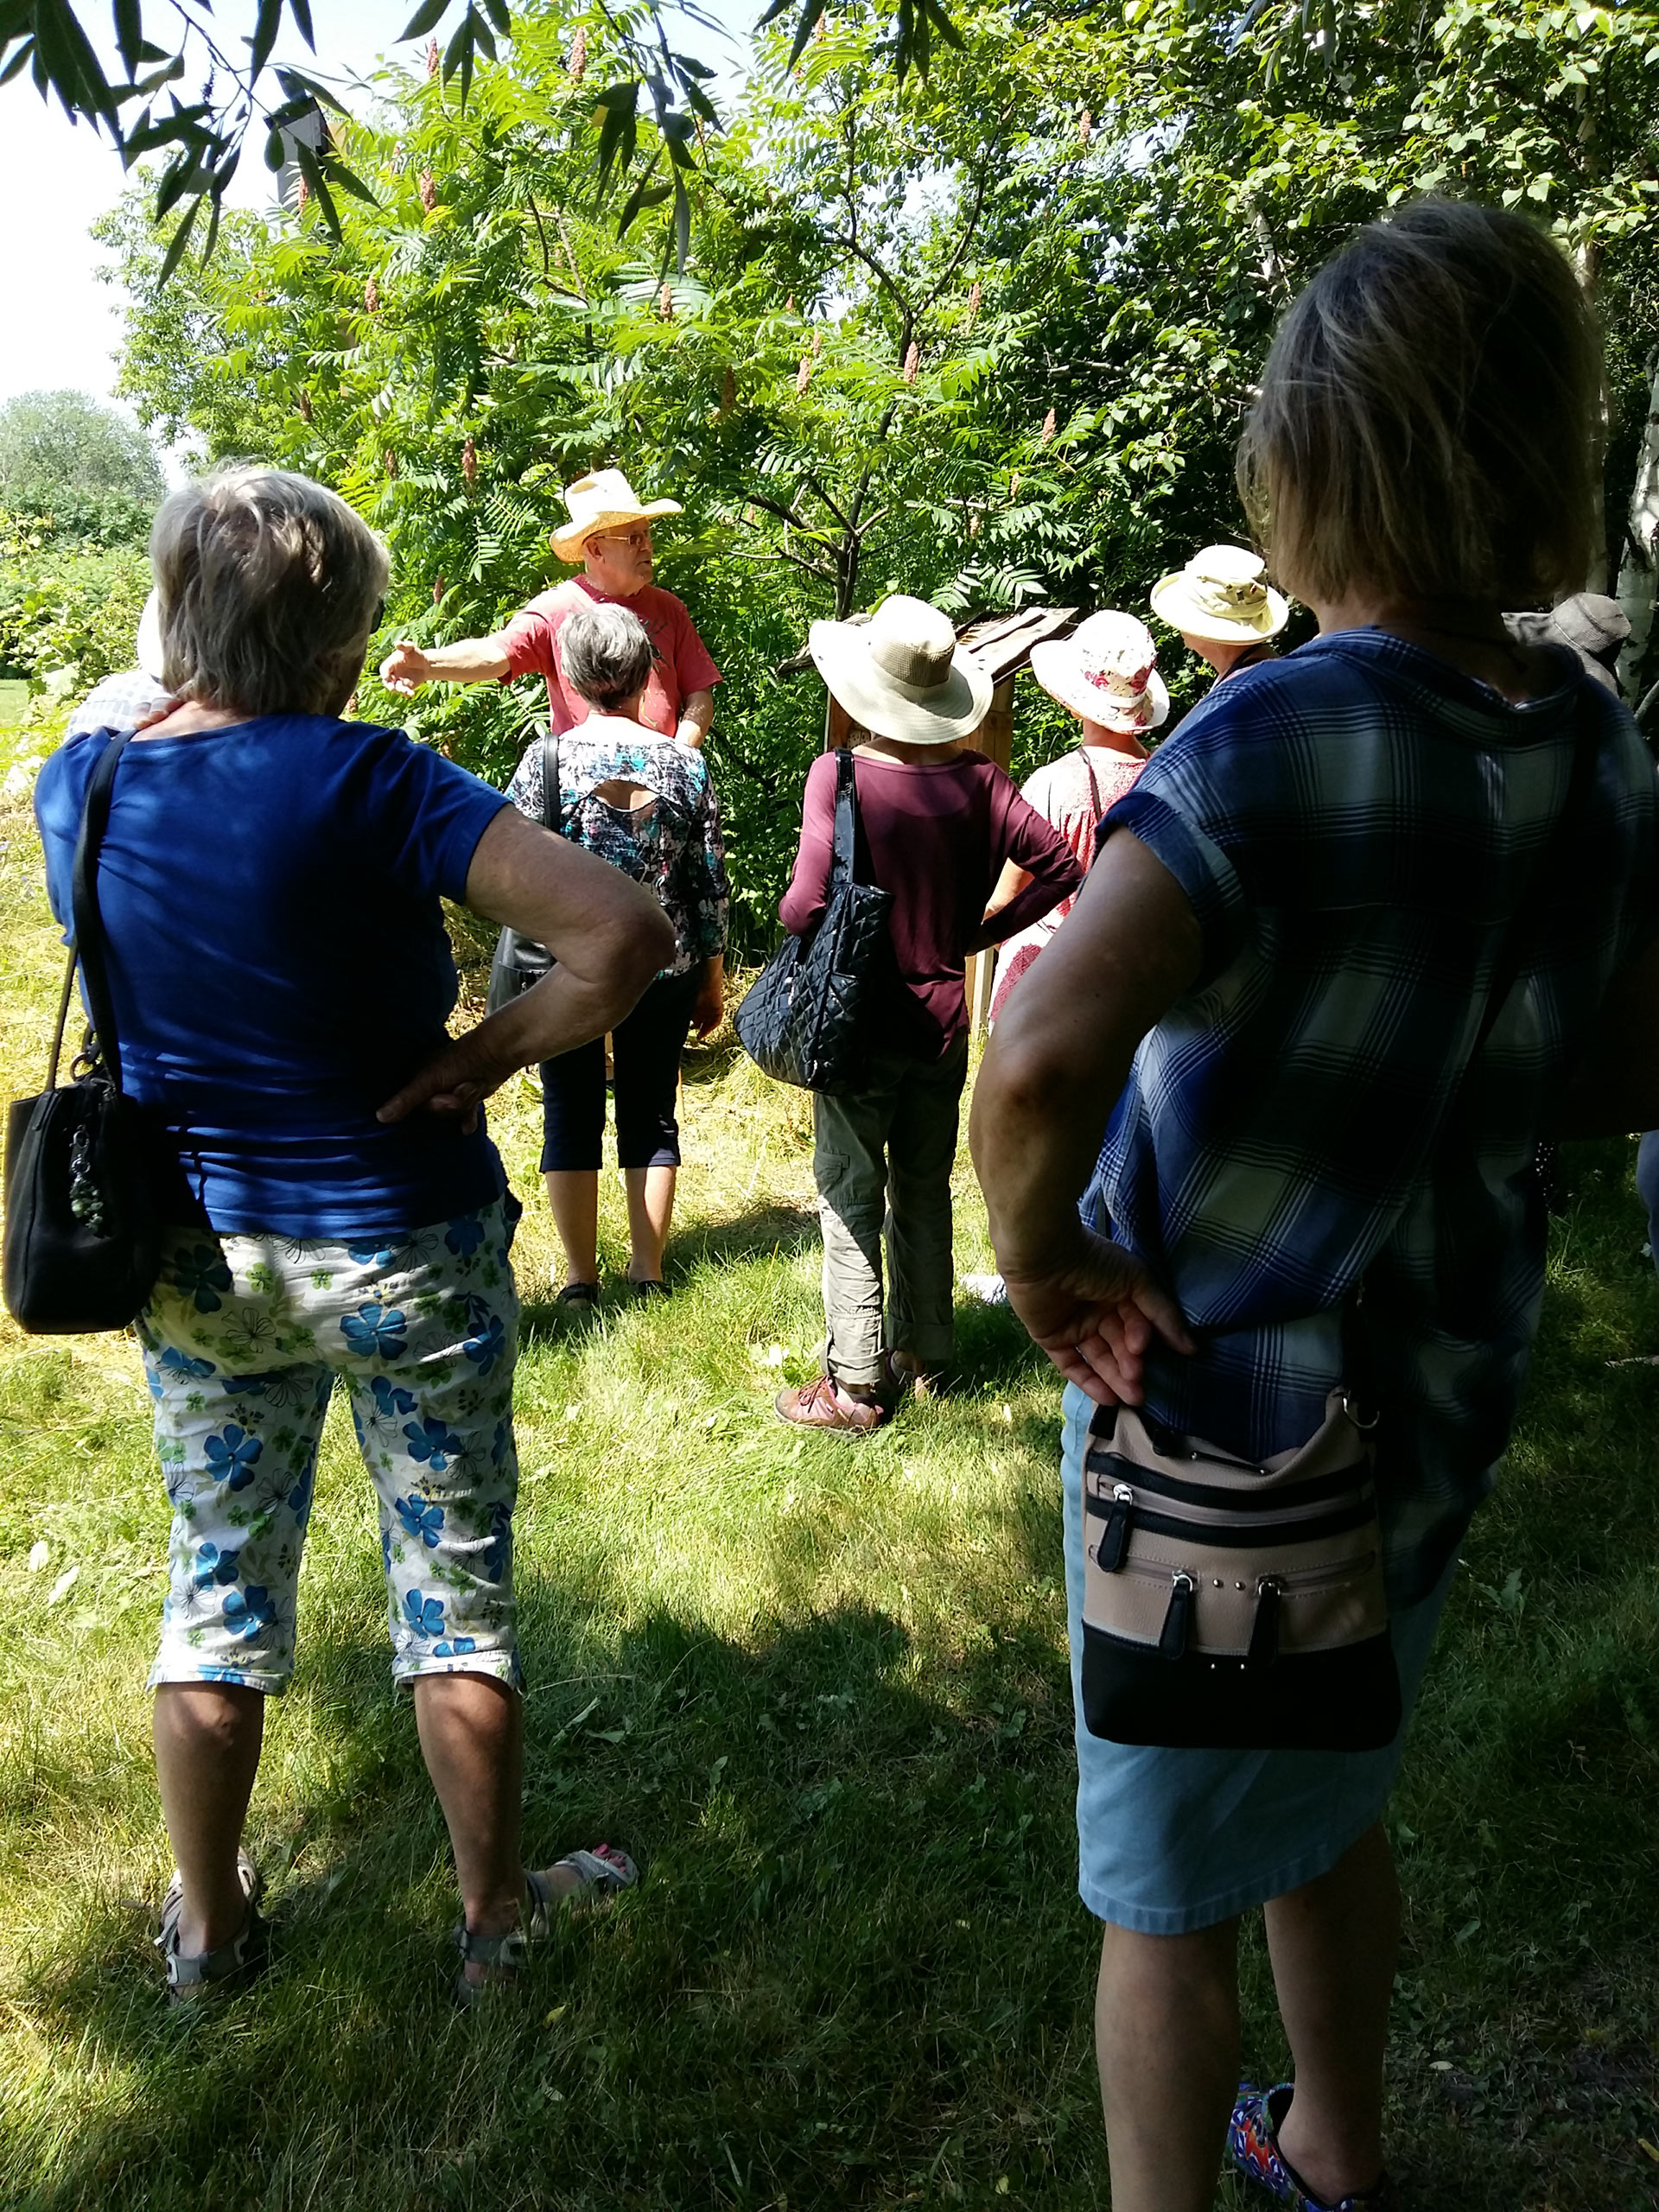 Expert Rob Longair explaining about solitary wasps near CWF's insect hotel.